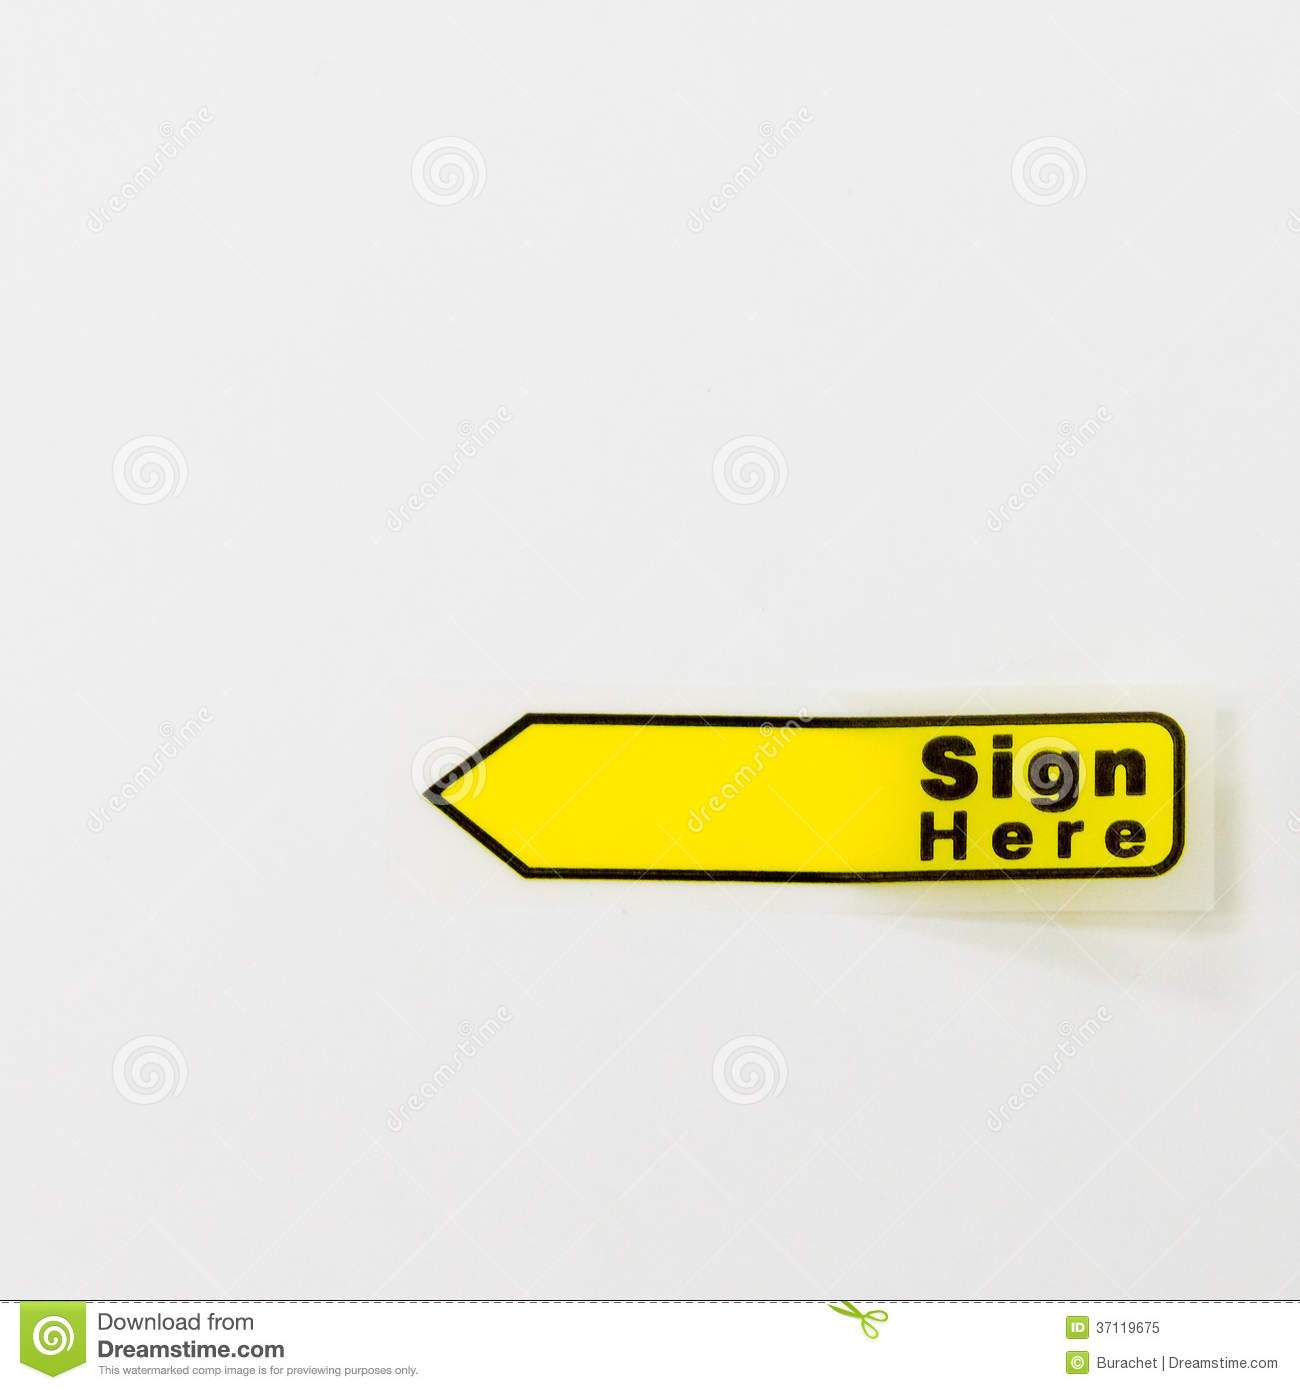 Sign here clipart black and white download Sign here clipart 2 » Clipart Portal black and white download